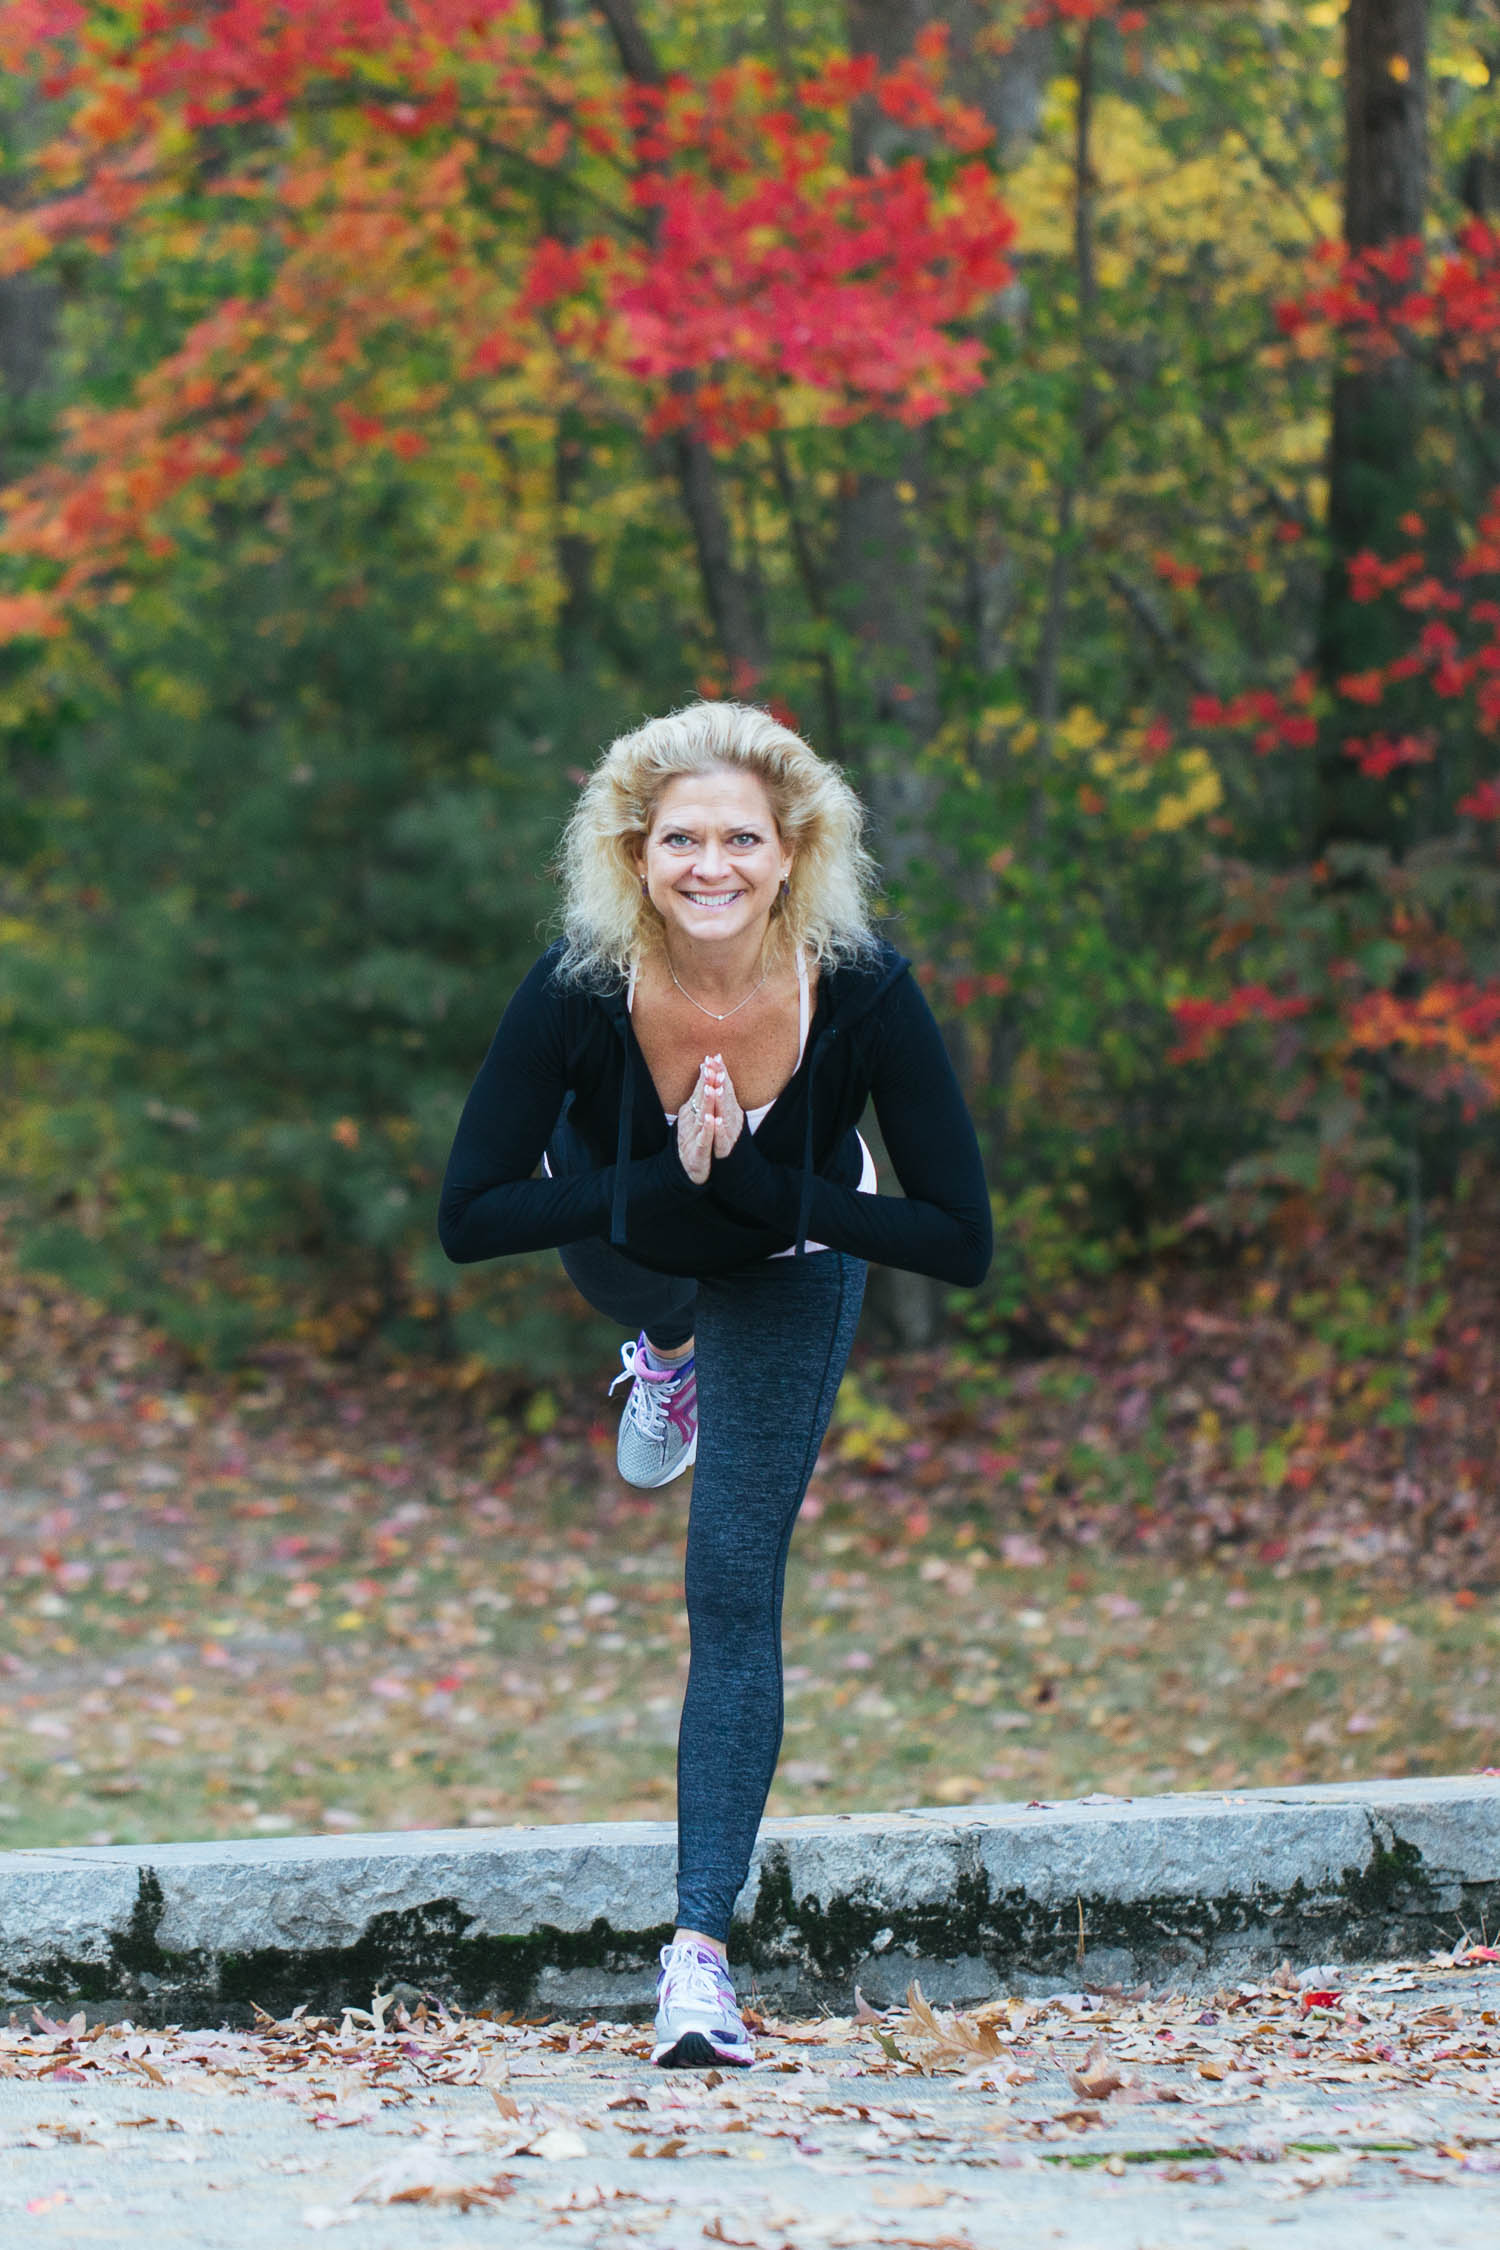 universal-power-yoga-teacher-training-norwood-ma-yoga-photographer-5807.jpg